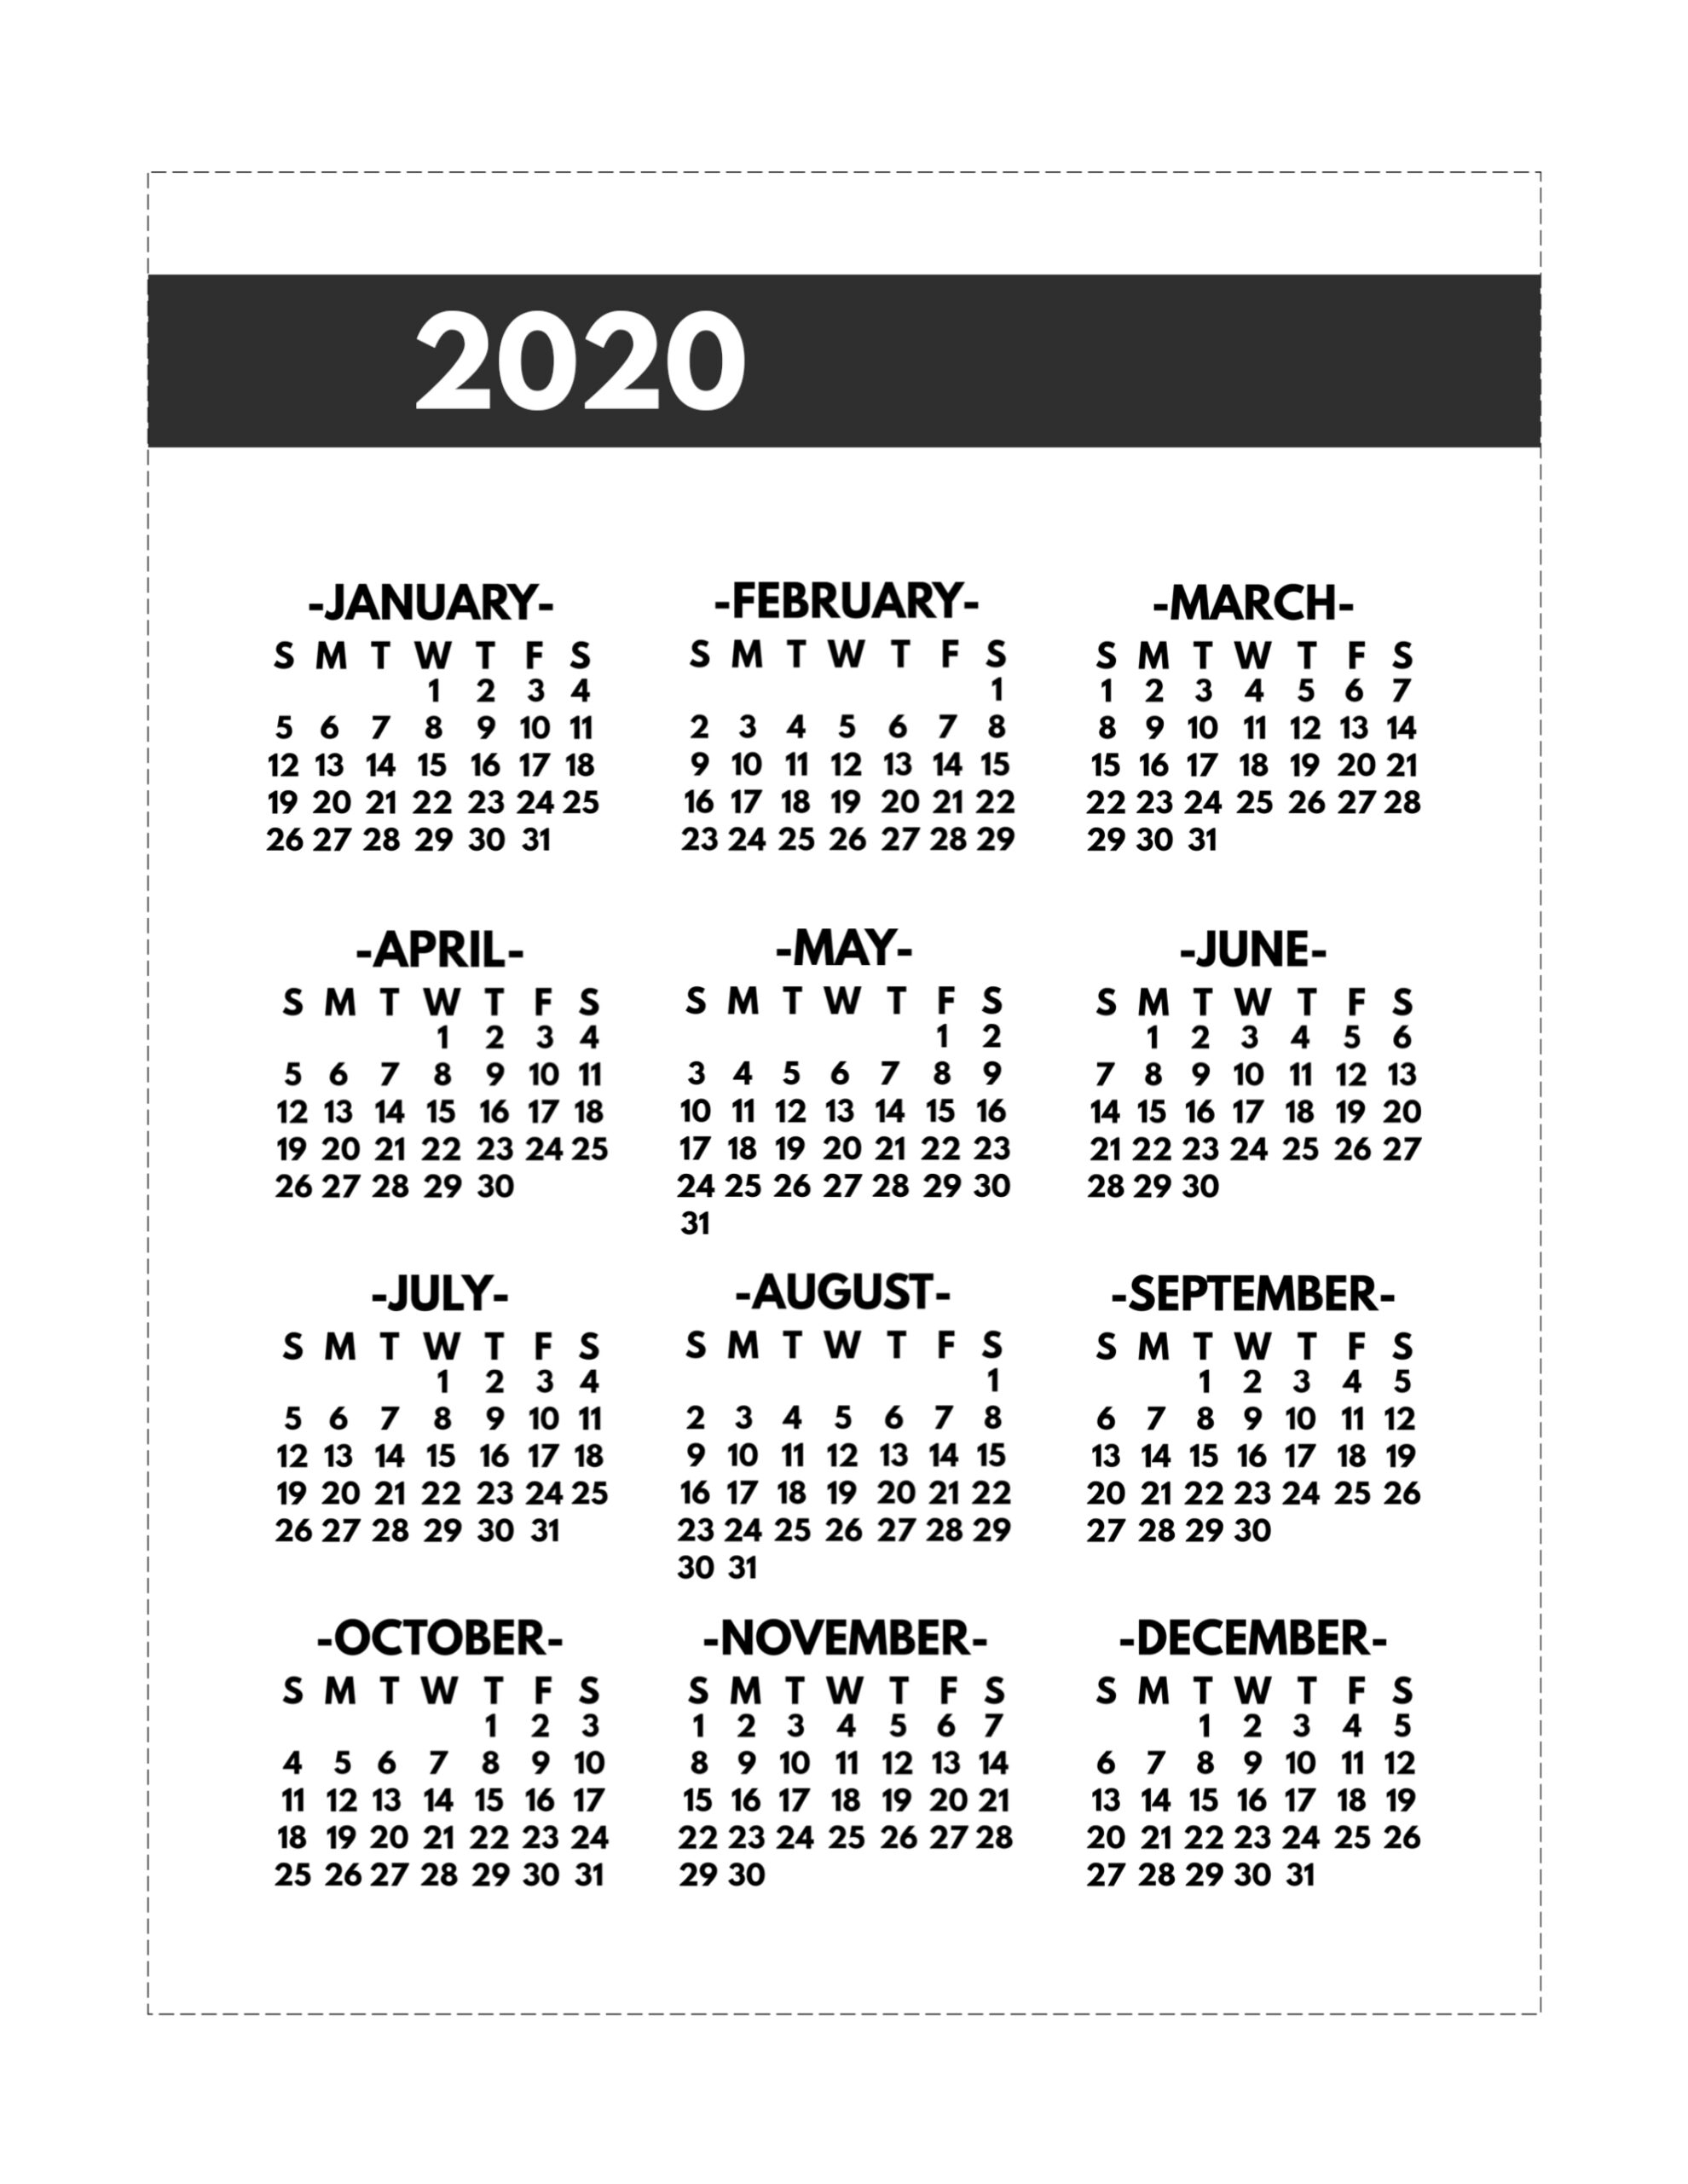 2020 Printable One Page Year At A Glance Calendar - Paper with 2020 Free Printable Calendars Without Downloading At A Glance